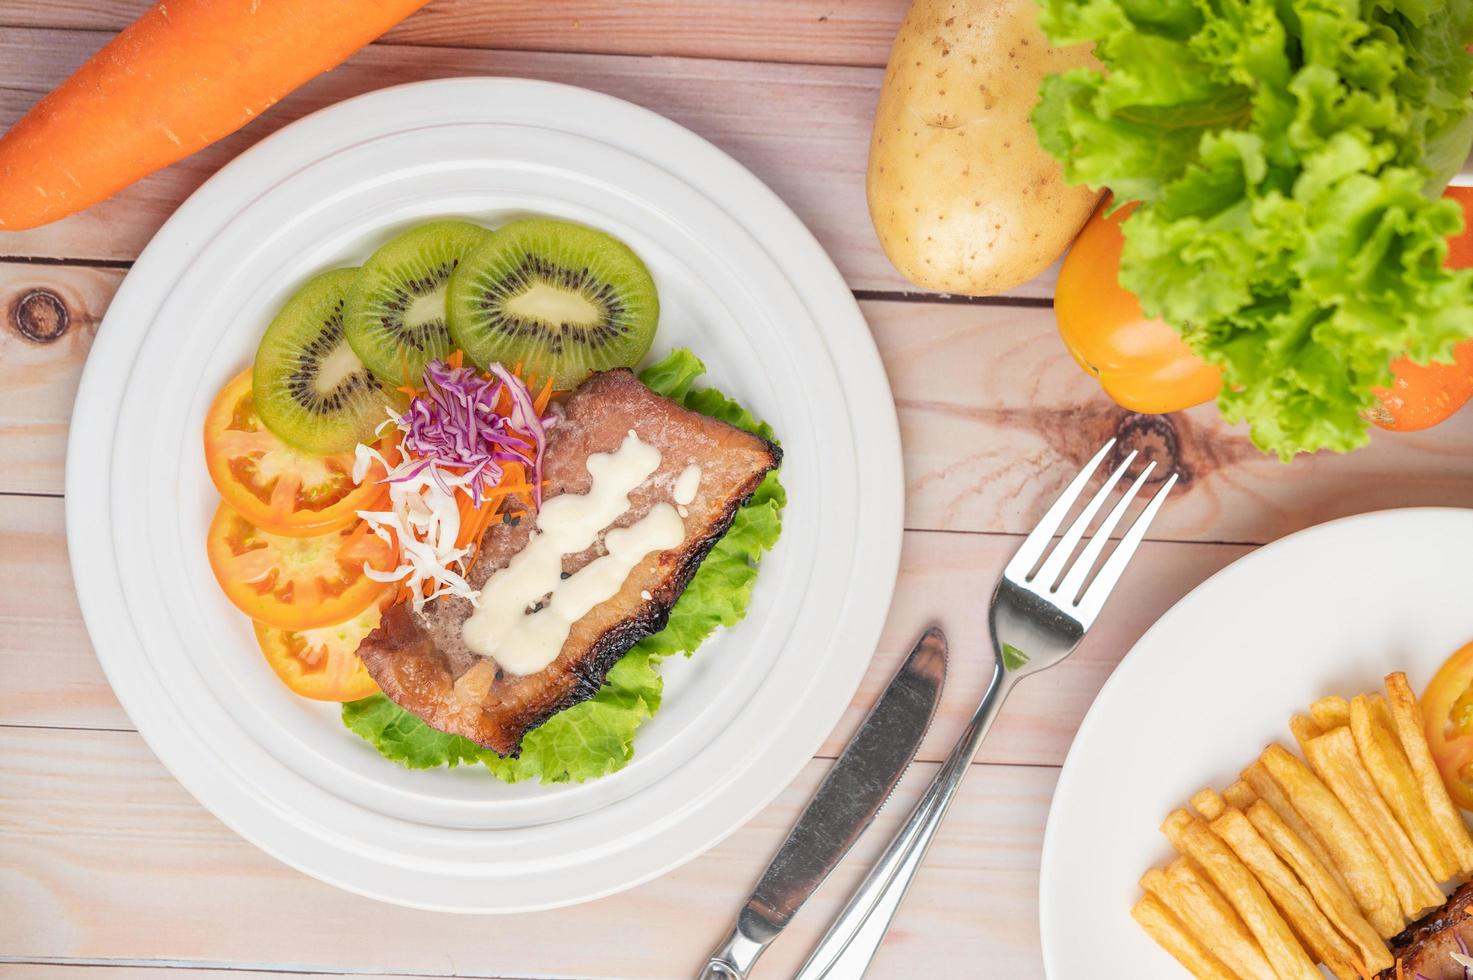 Fish steak with french fries and salad photo